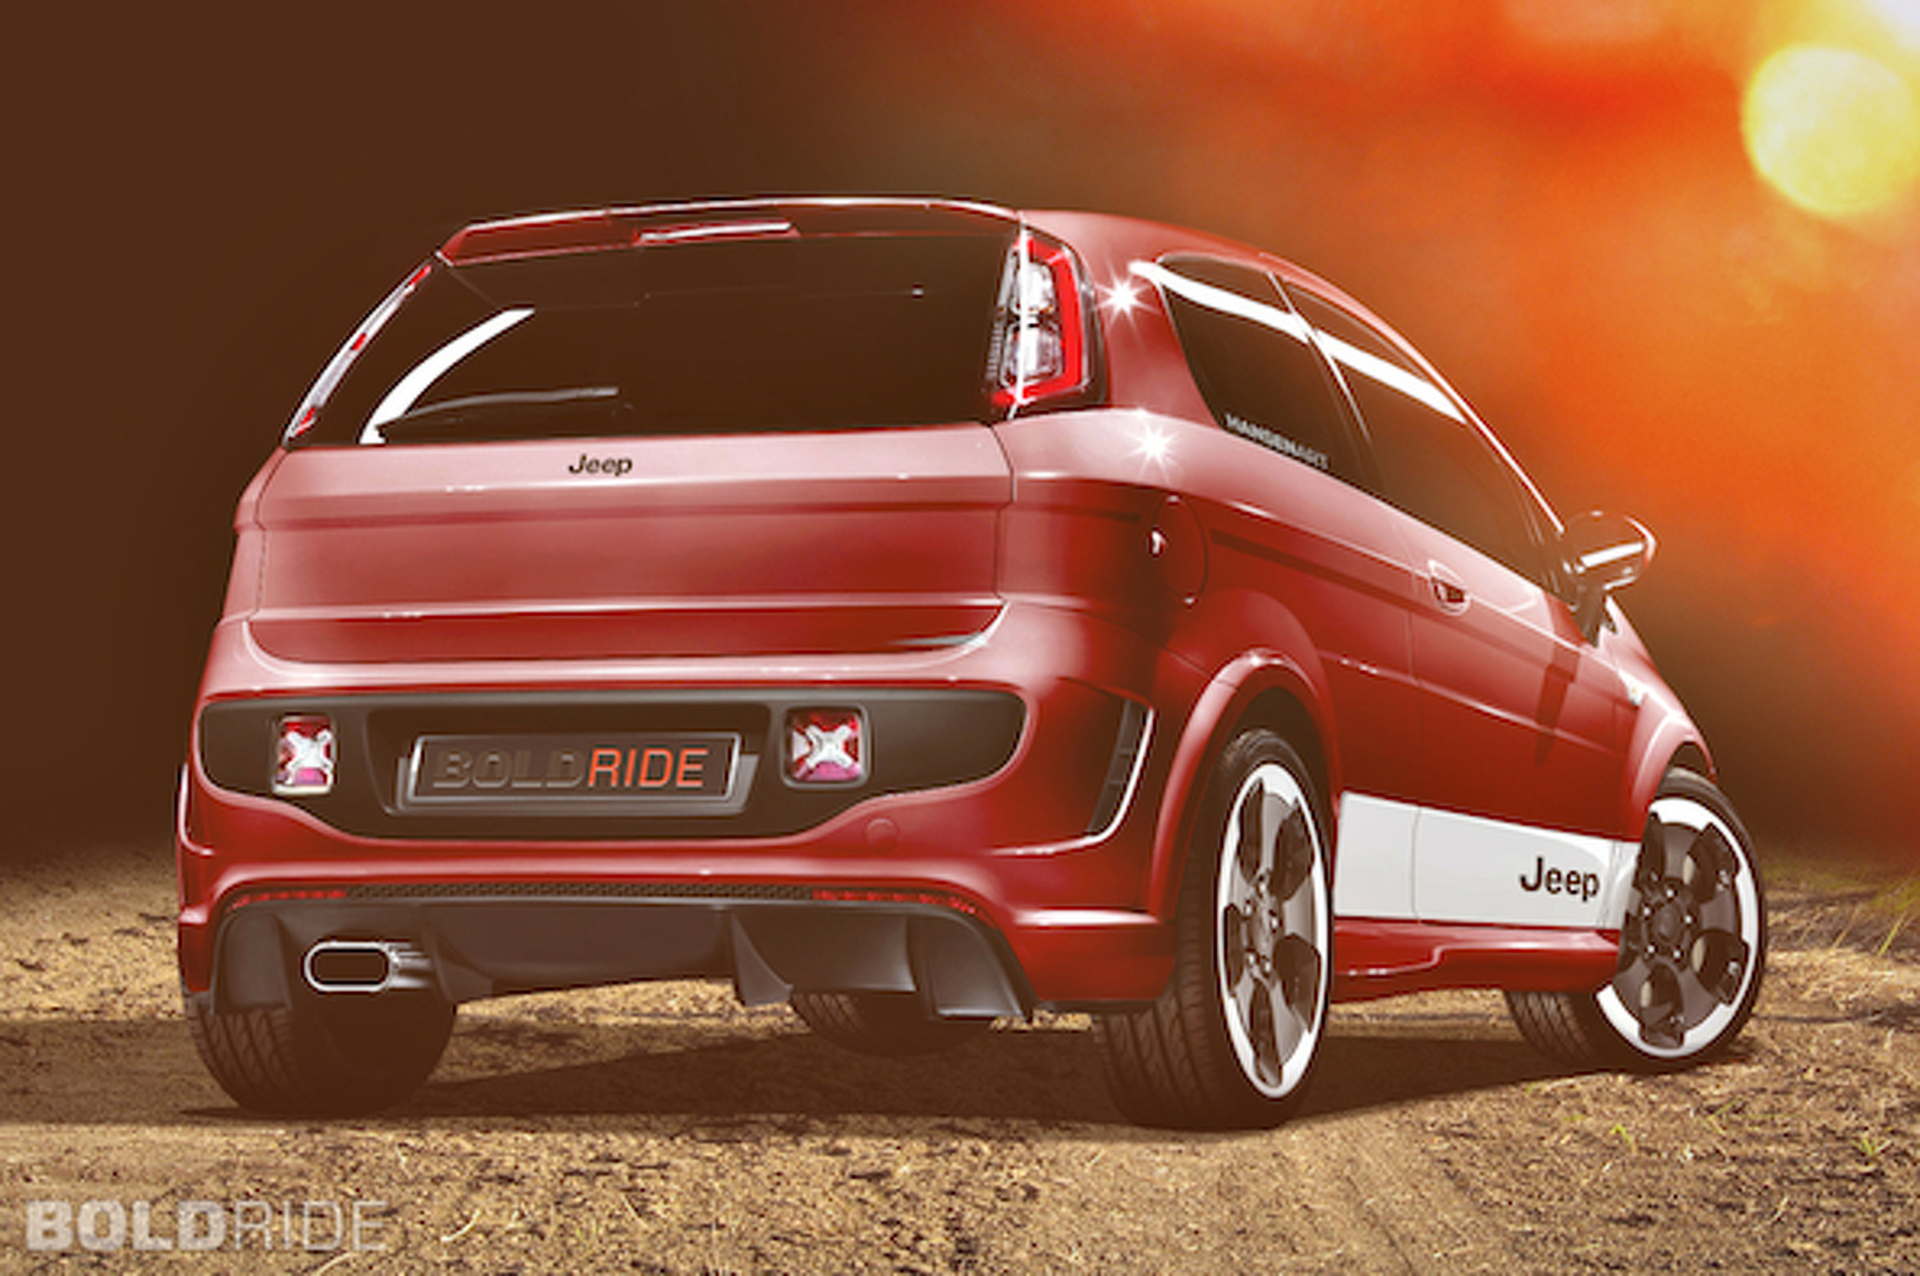 Jeep Hatchback Concept: Production Hopes and Rally Dreams